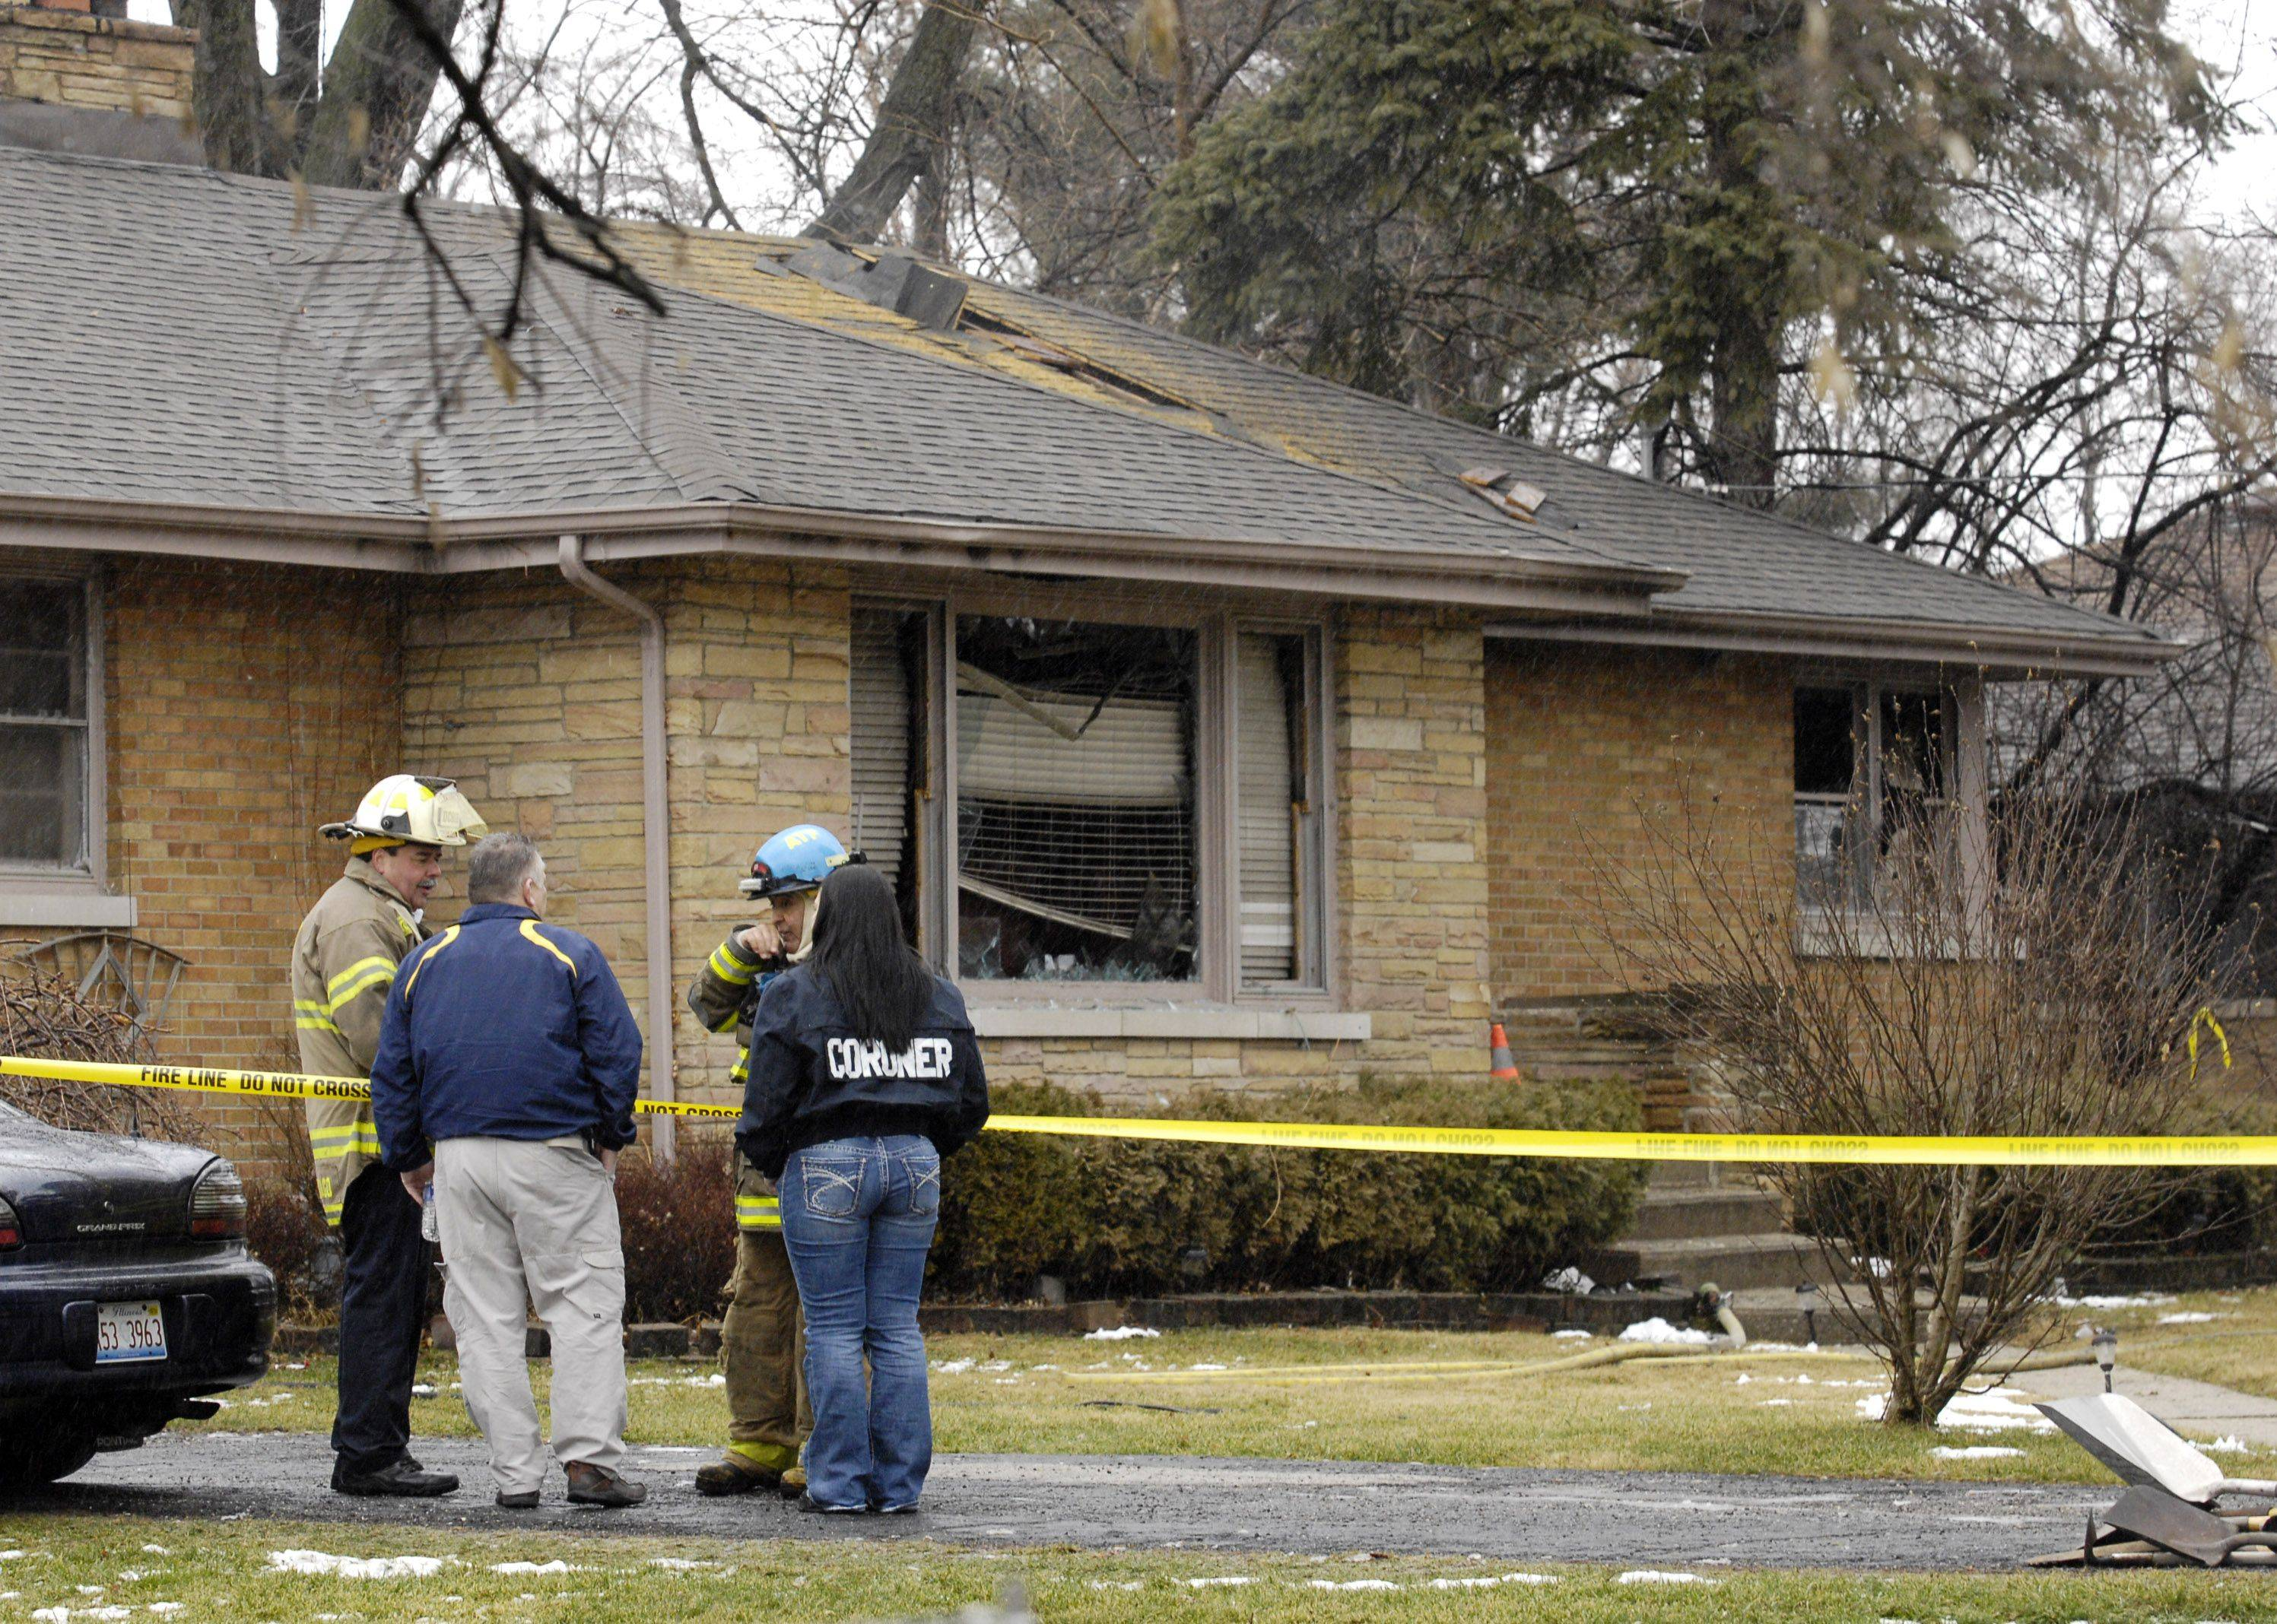 Oakbrook Terrace Fire Chief Gregory Sebesta said he is carefully monitoring his personnel for signs of critical incident stress after their response Tuesday morning to the scene of four fatal shootings and a fire in unincorporated DuPage County.